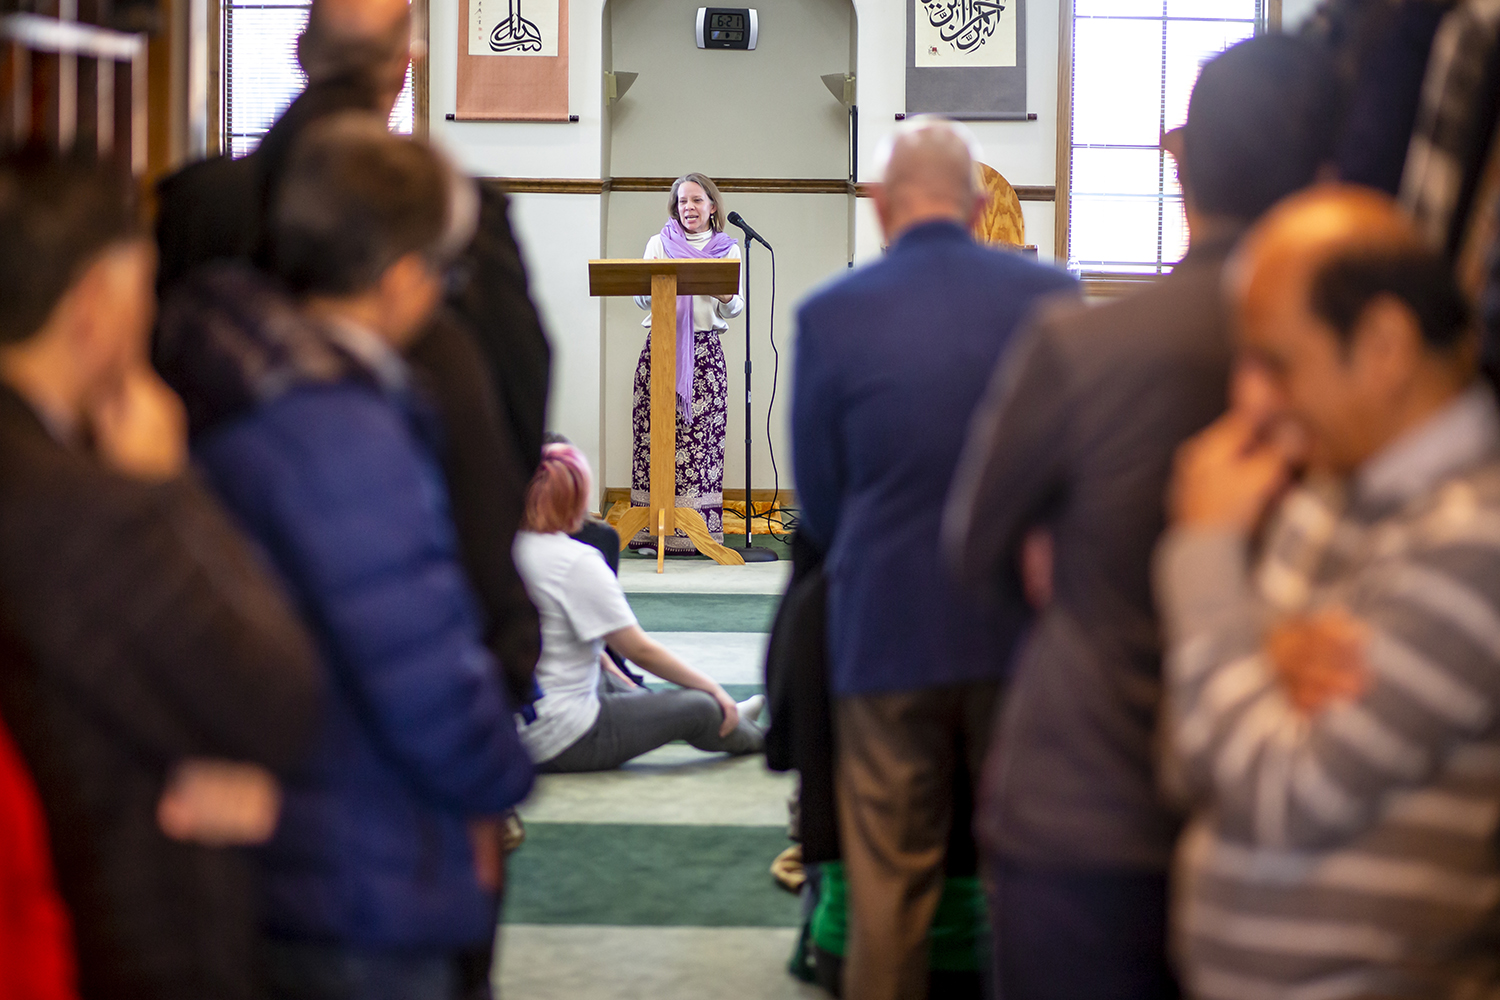 Rev. Susan Phillips, of First Presbyterian Church, delivers her remarks during a vigil of solidarity & support for the Islamic community and the New Zealand shooting victims hosted by the Greater Springfield Interfaith Association and the Islamic Society Of Greater Springfield at the Islamic Society of Greater Springfield mosque, Sunday, March 17, 2019, in Springfield, Ill. [Justin L. Fowler/The State Journal-Register]